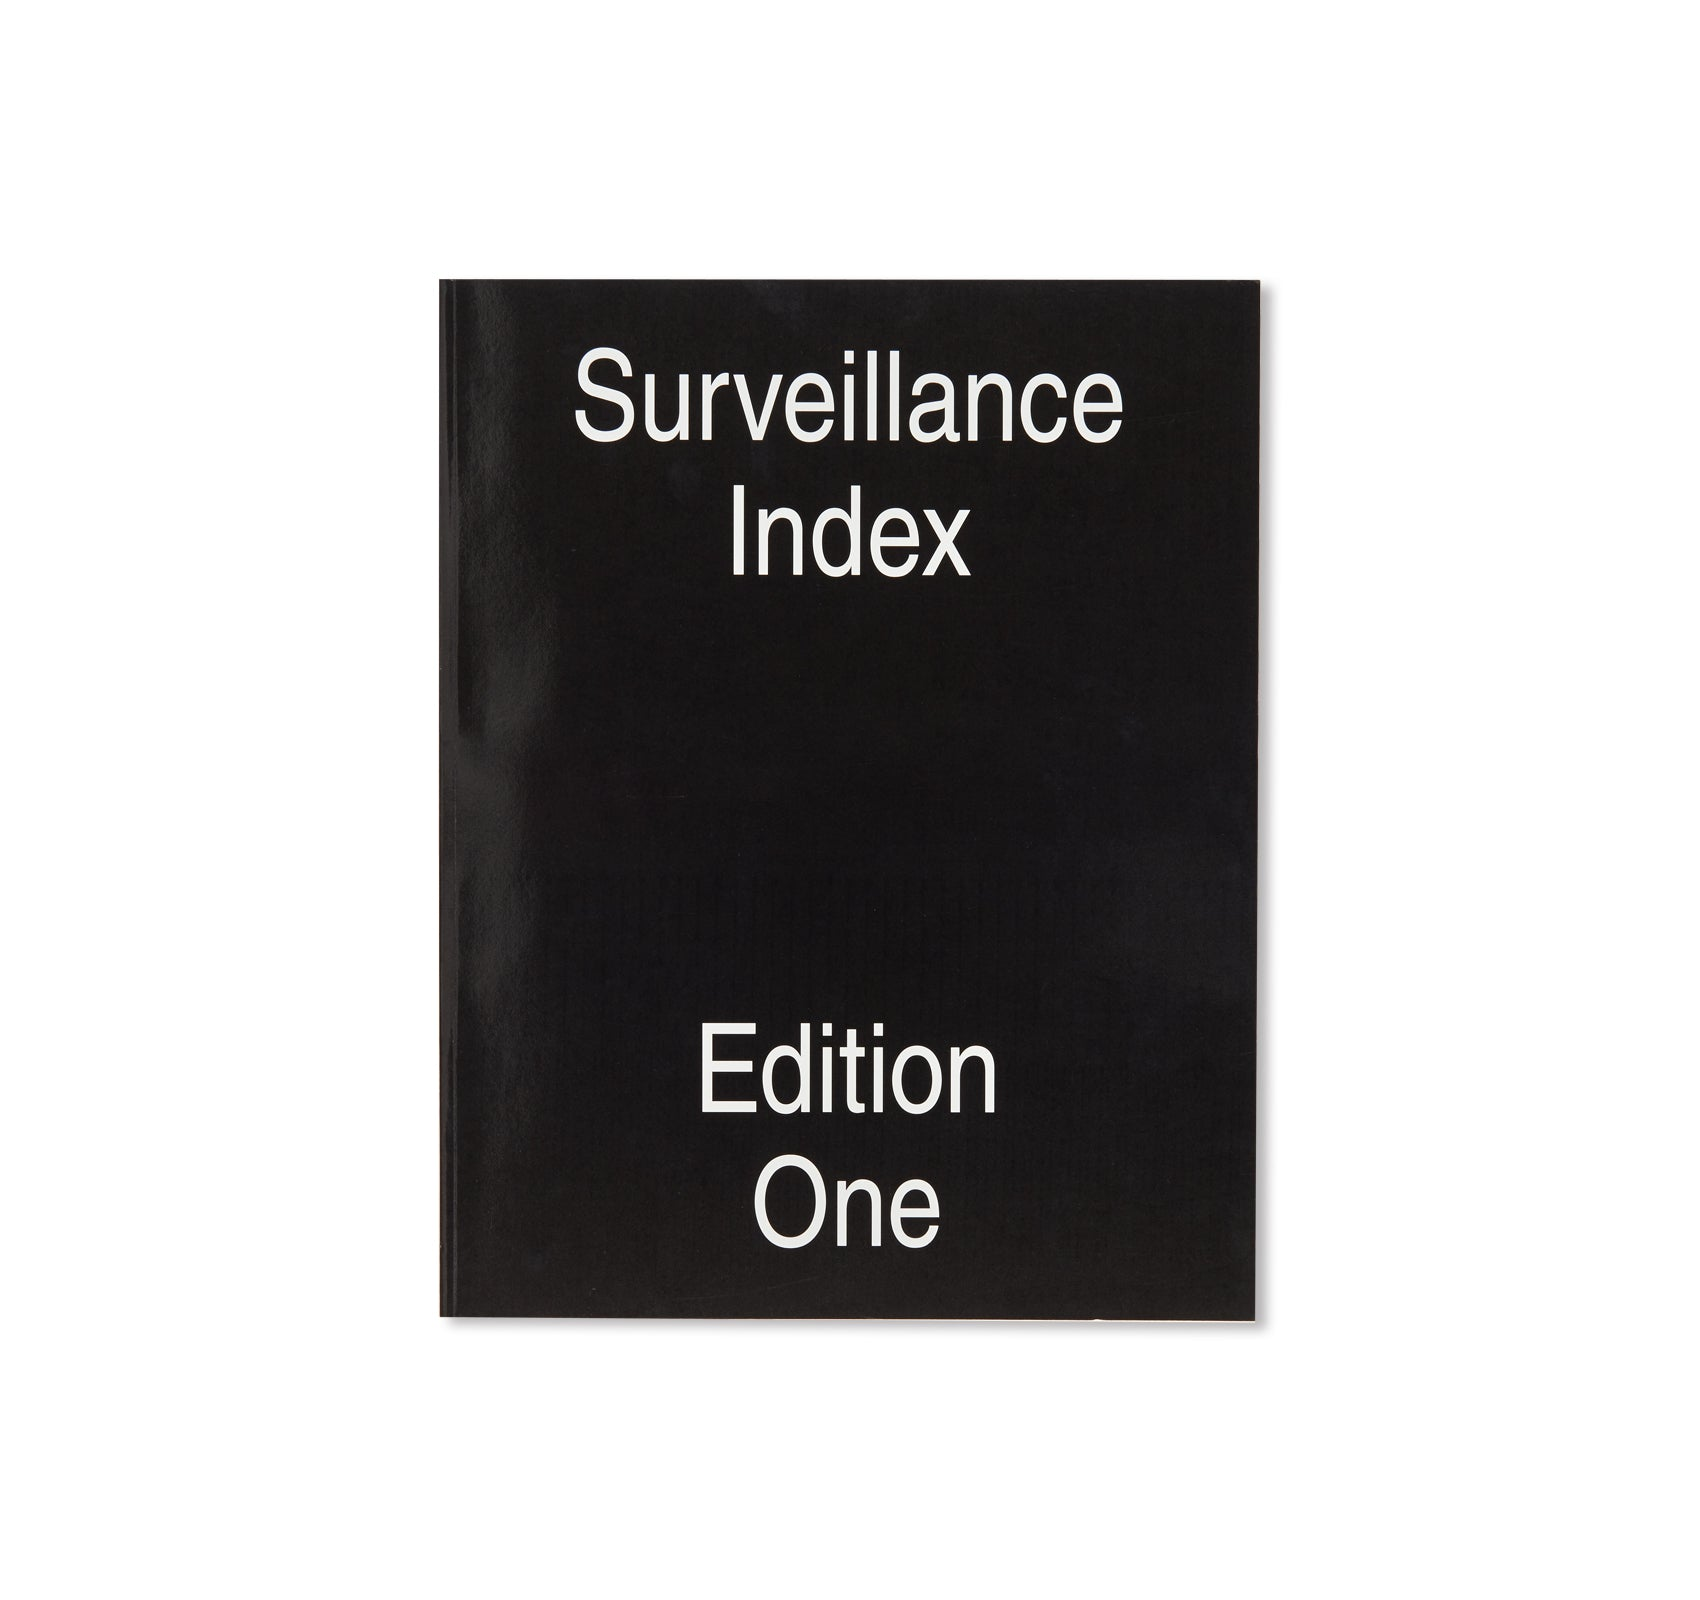 SURVEILLANCE INDEX EDITION ONE by Mark Ghuneim